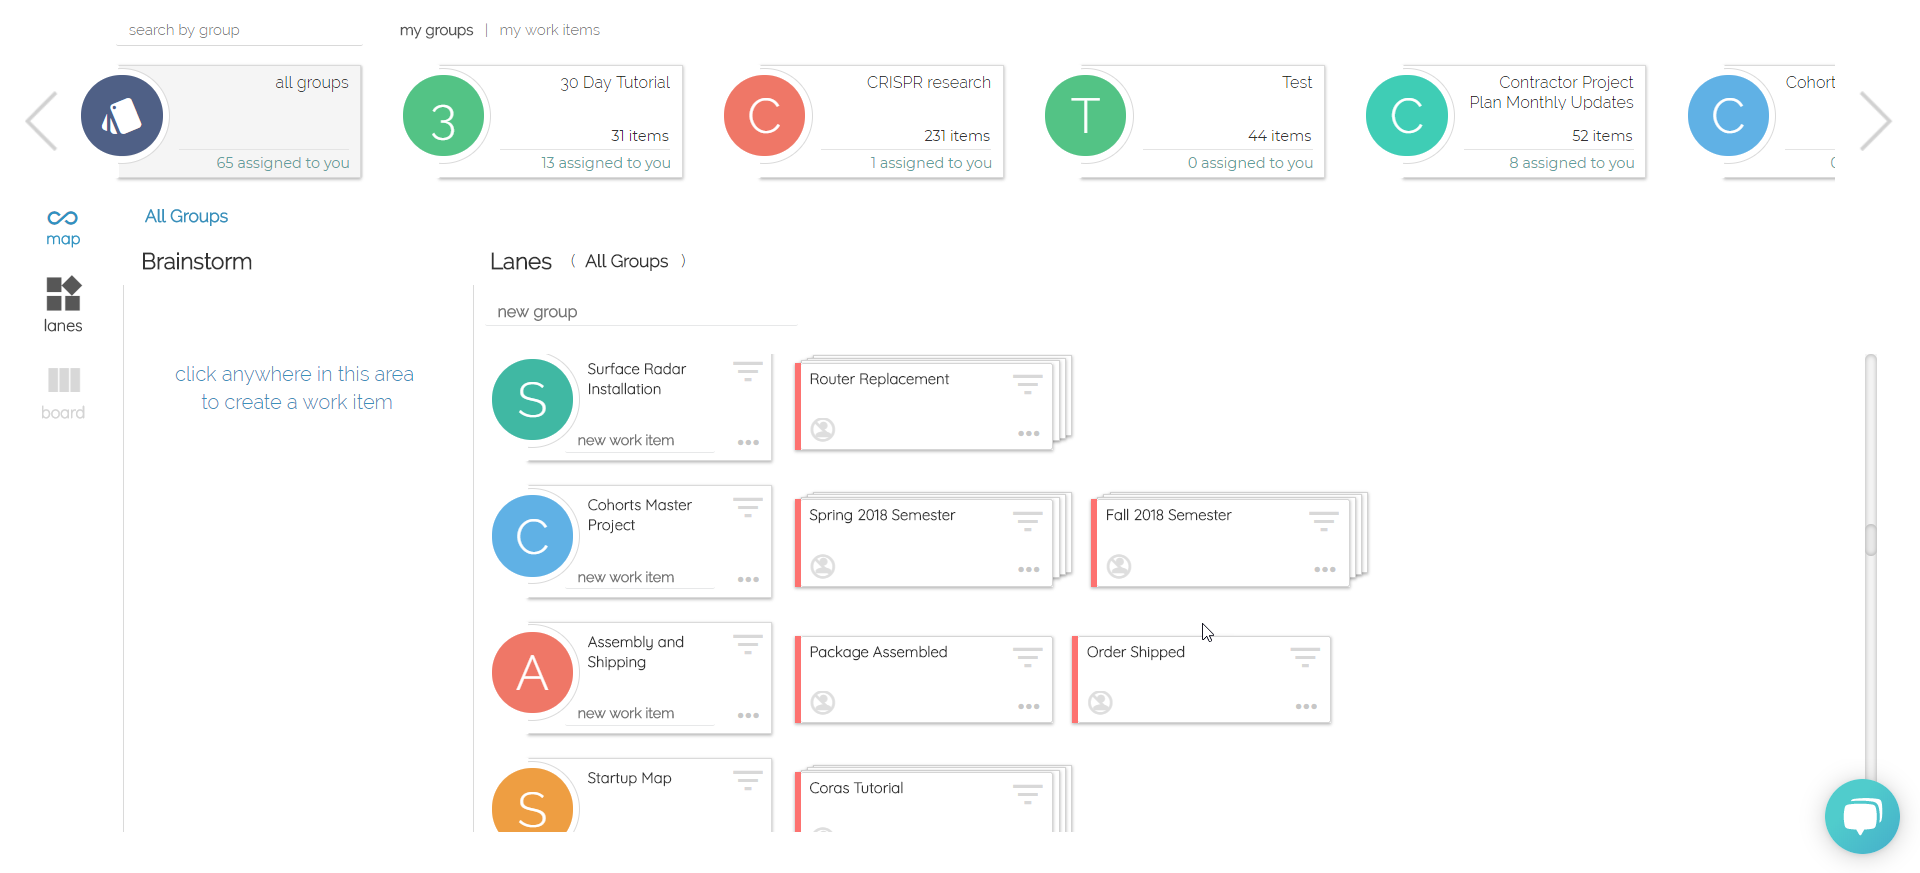 Organize your work - plan and track performance